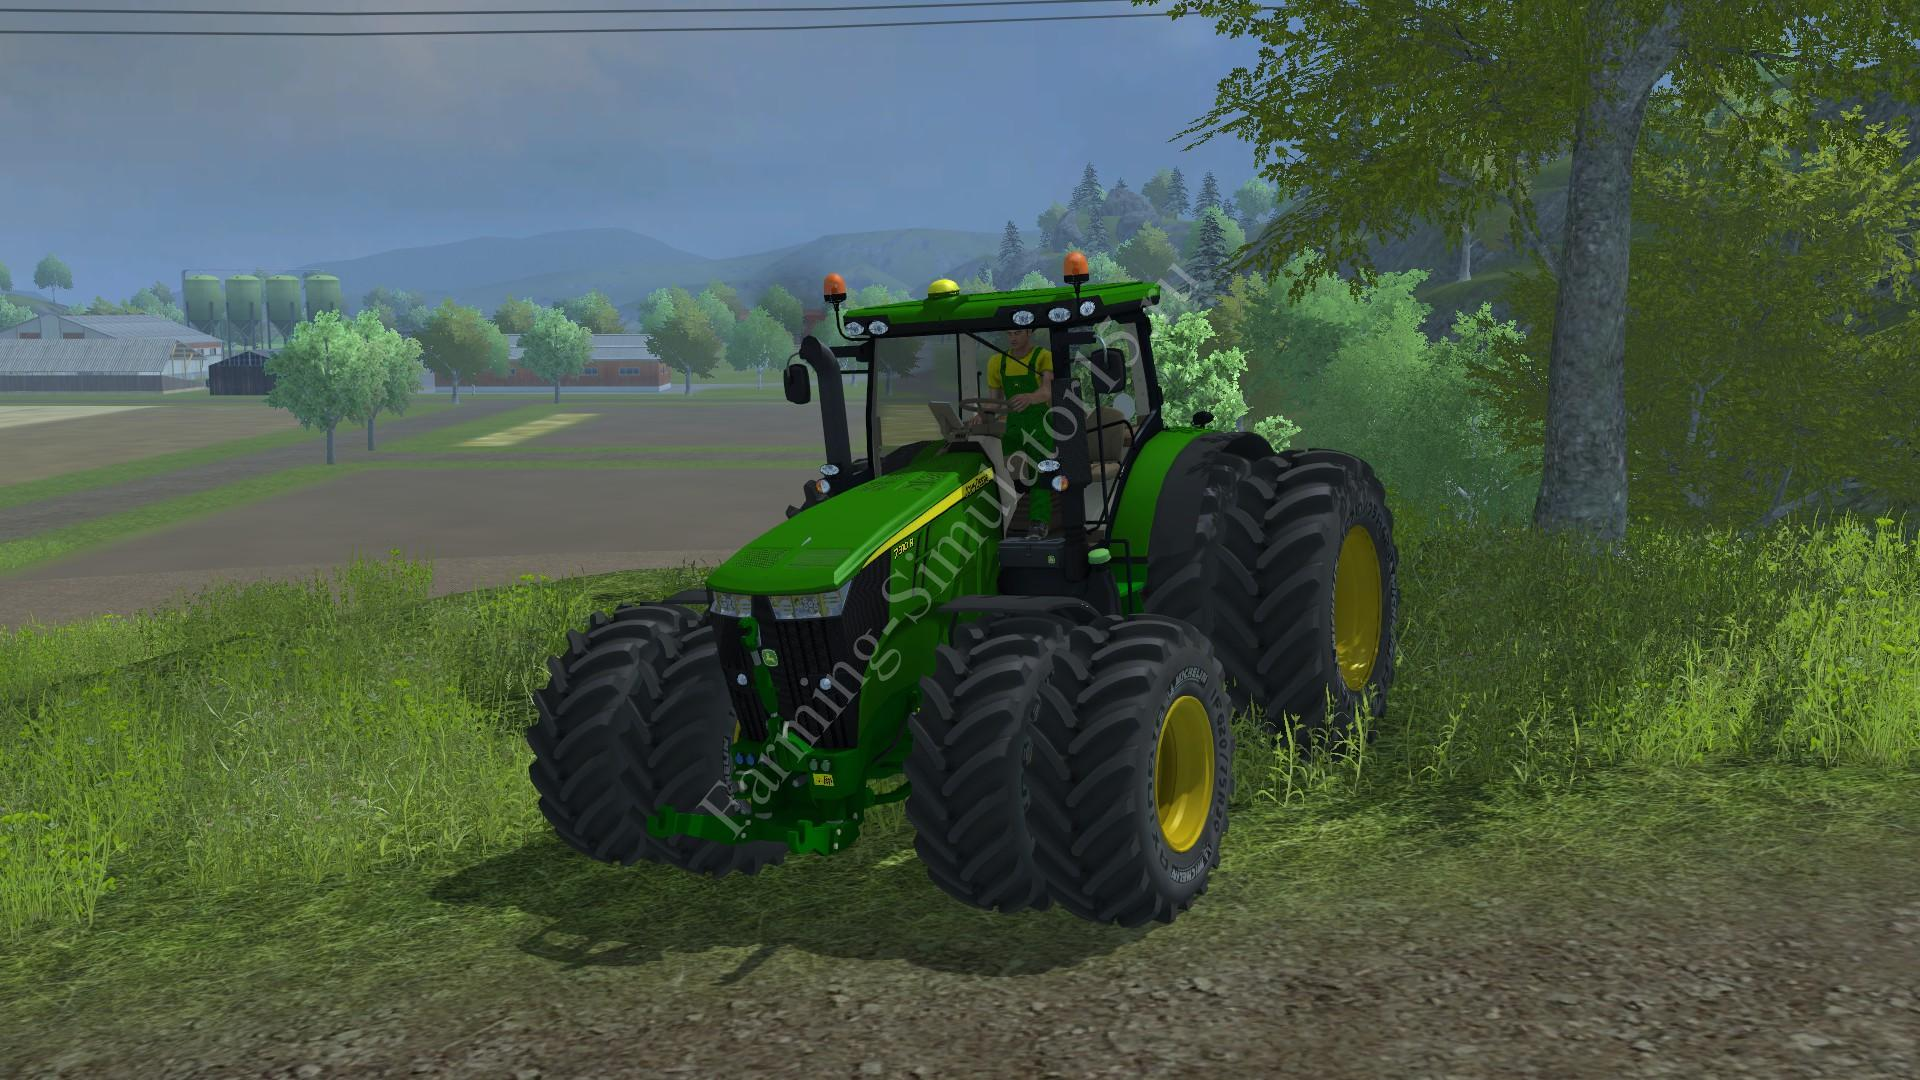 Мод трактора JohnDeere 7310R V2.1 DoubleWheels Farming Simulator 2013, Farming Simulator 13